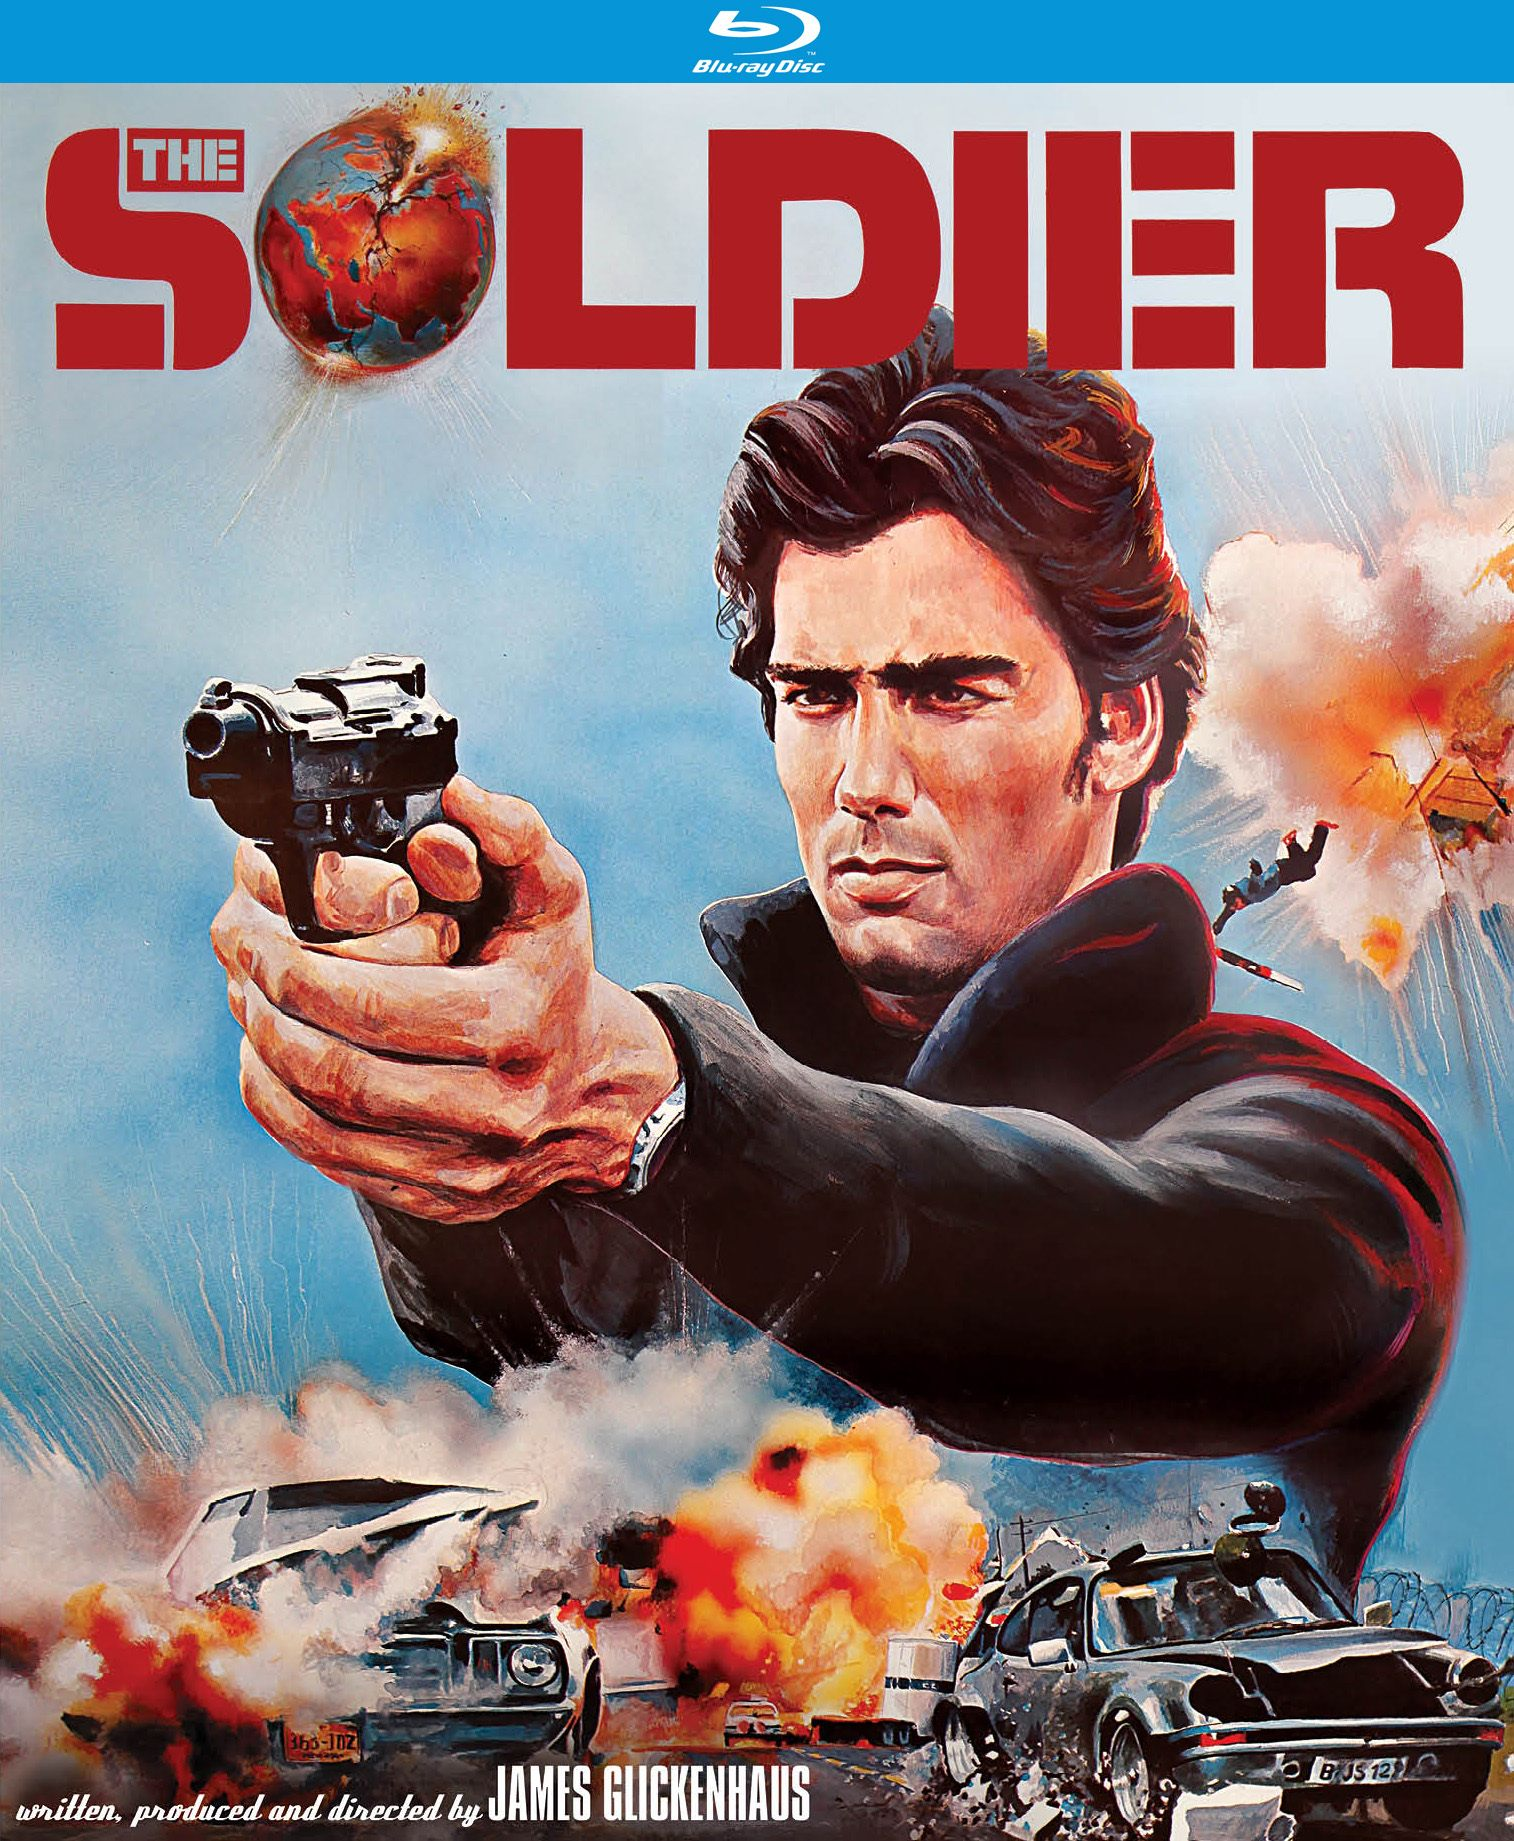 The Soldier - Kino Lorber Theatrical